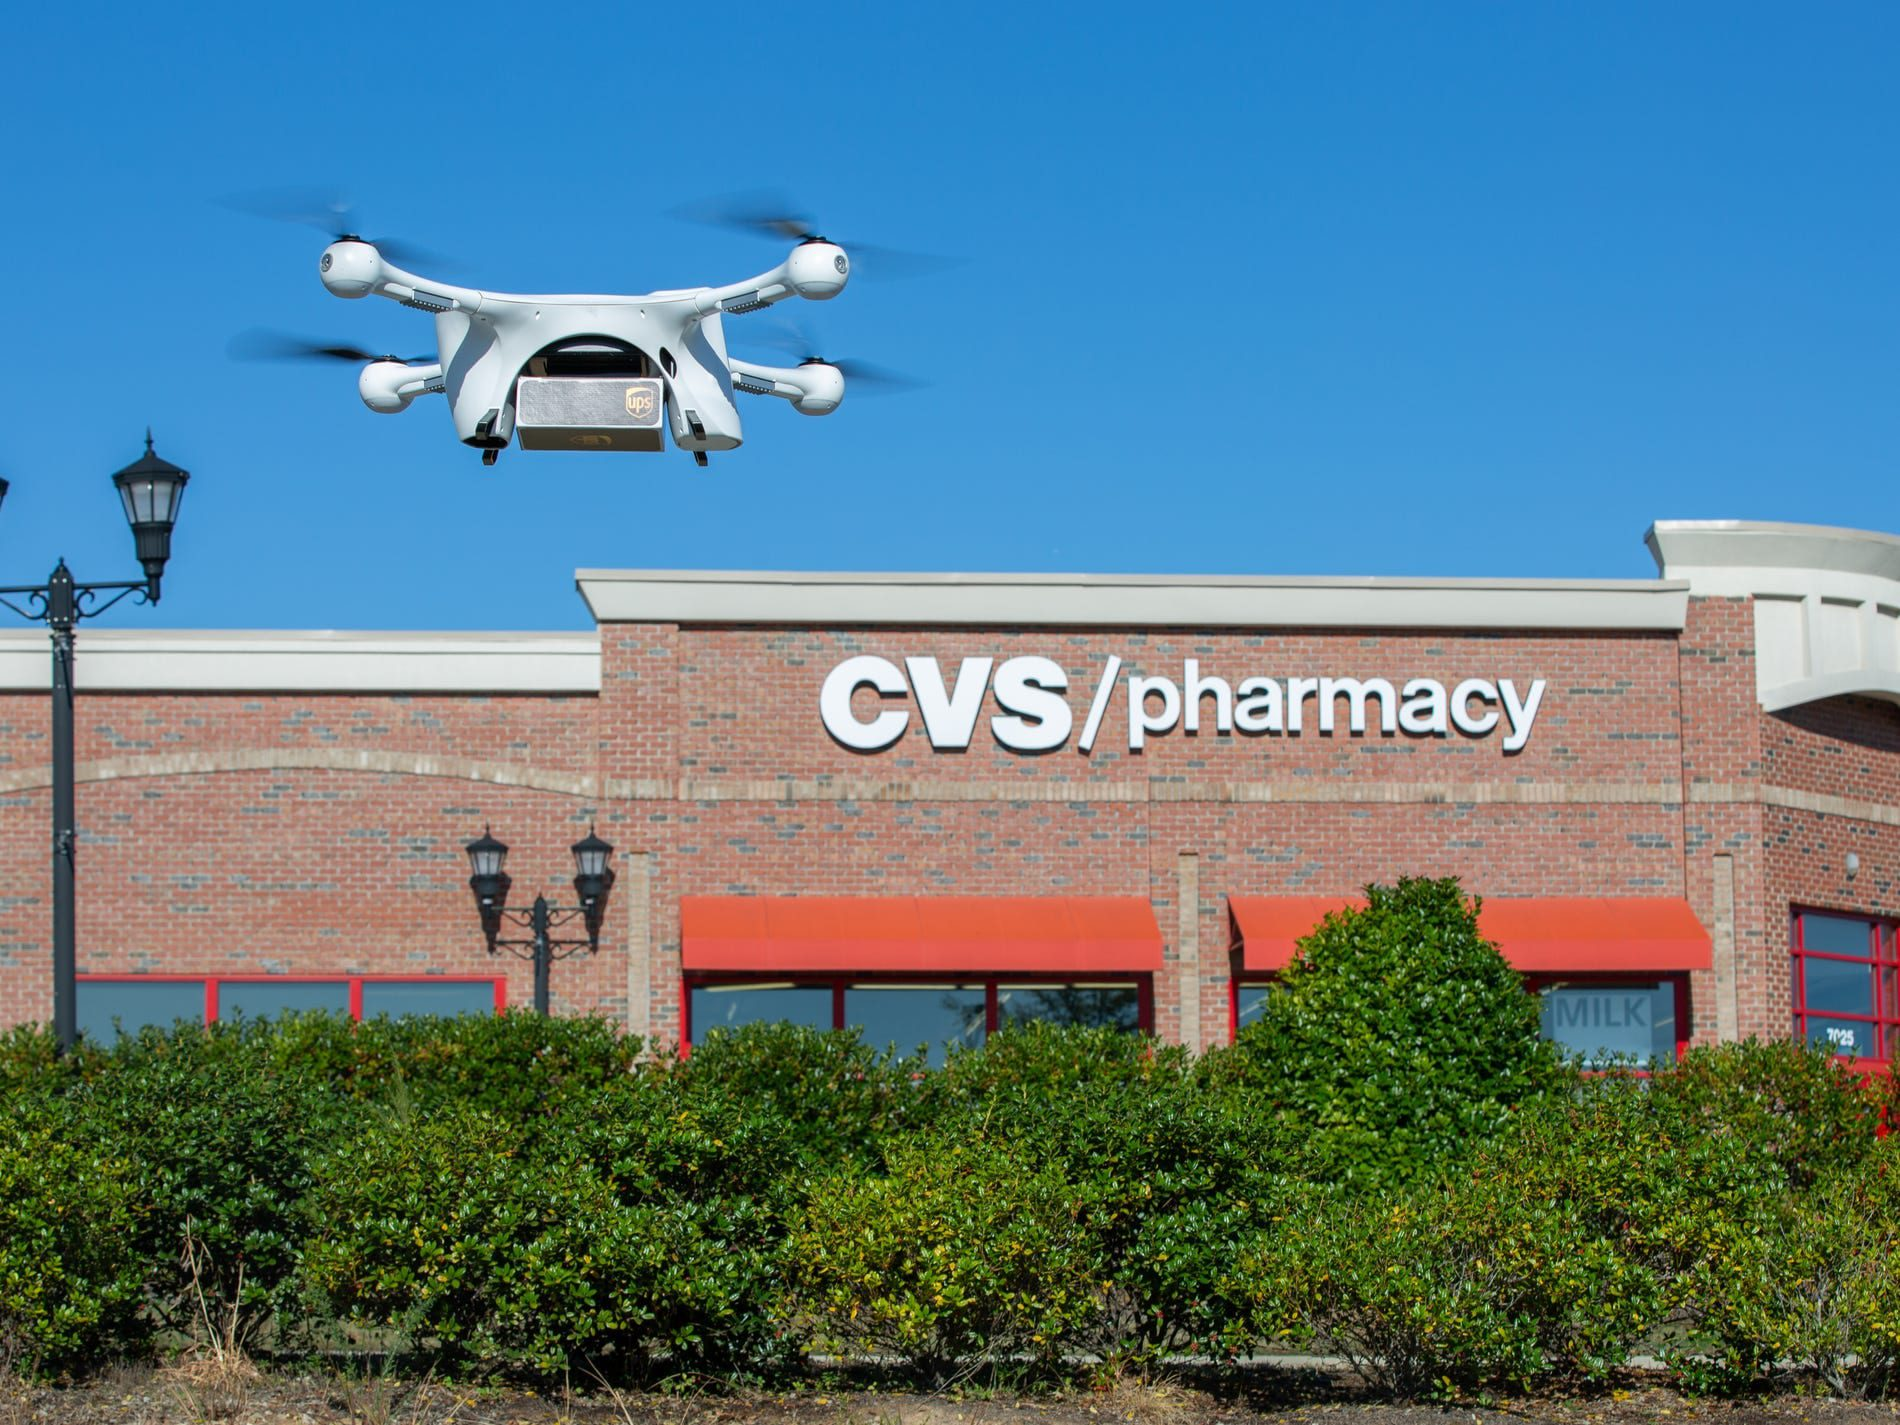 UPS delivery drones bring meds from CVS to largest retirement community